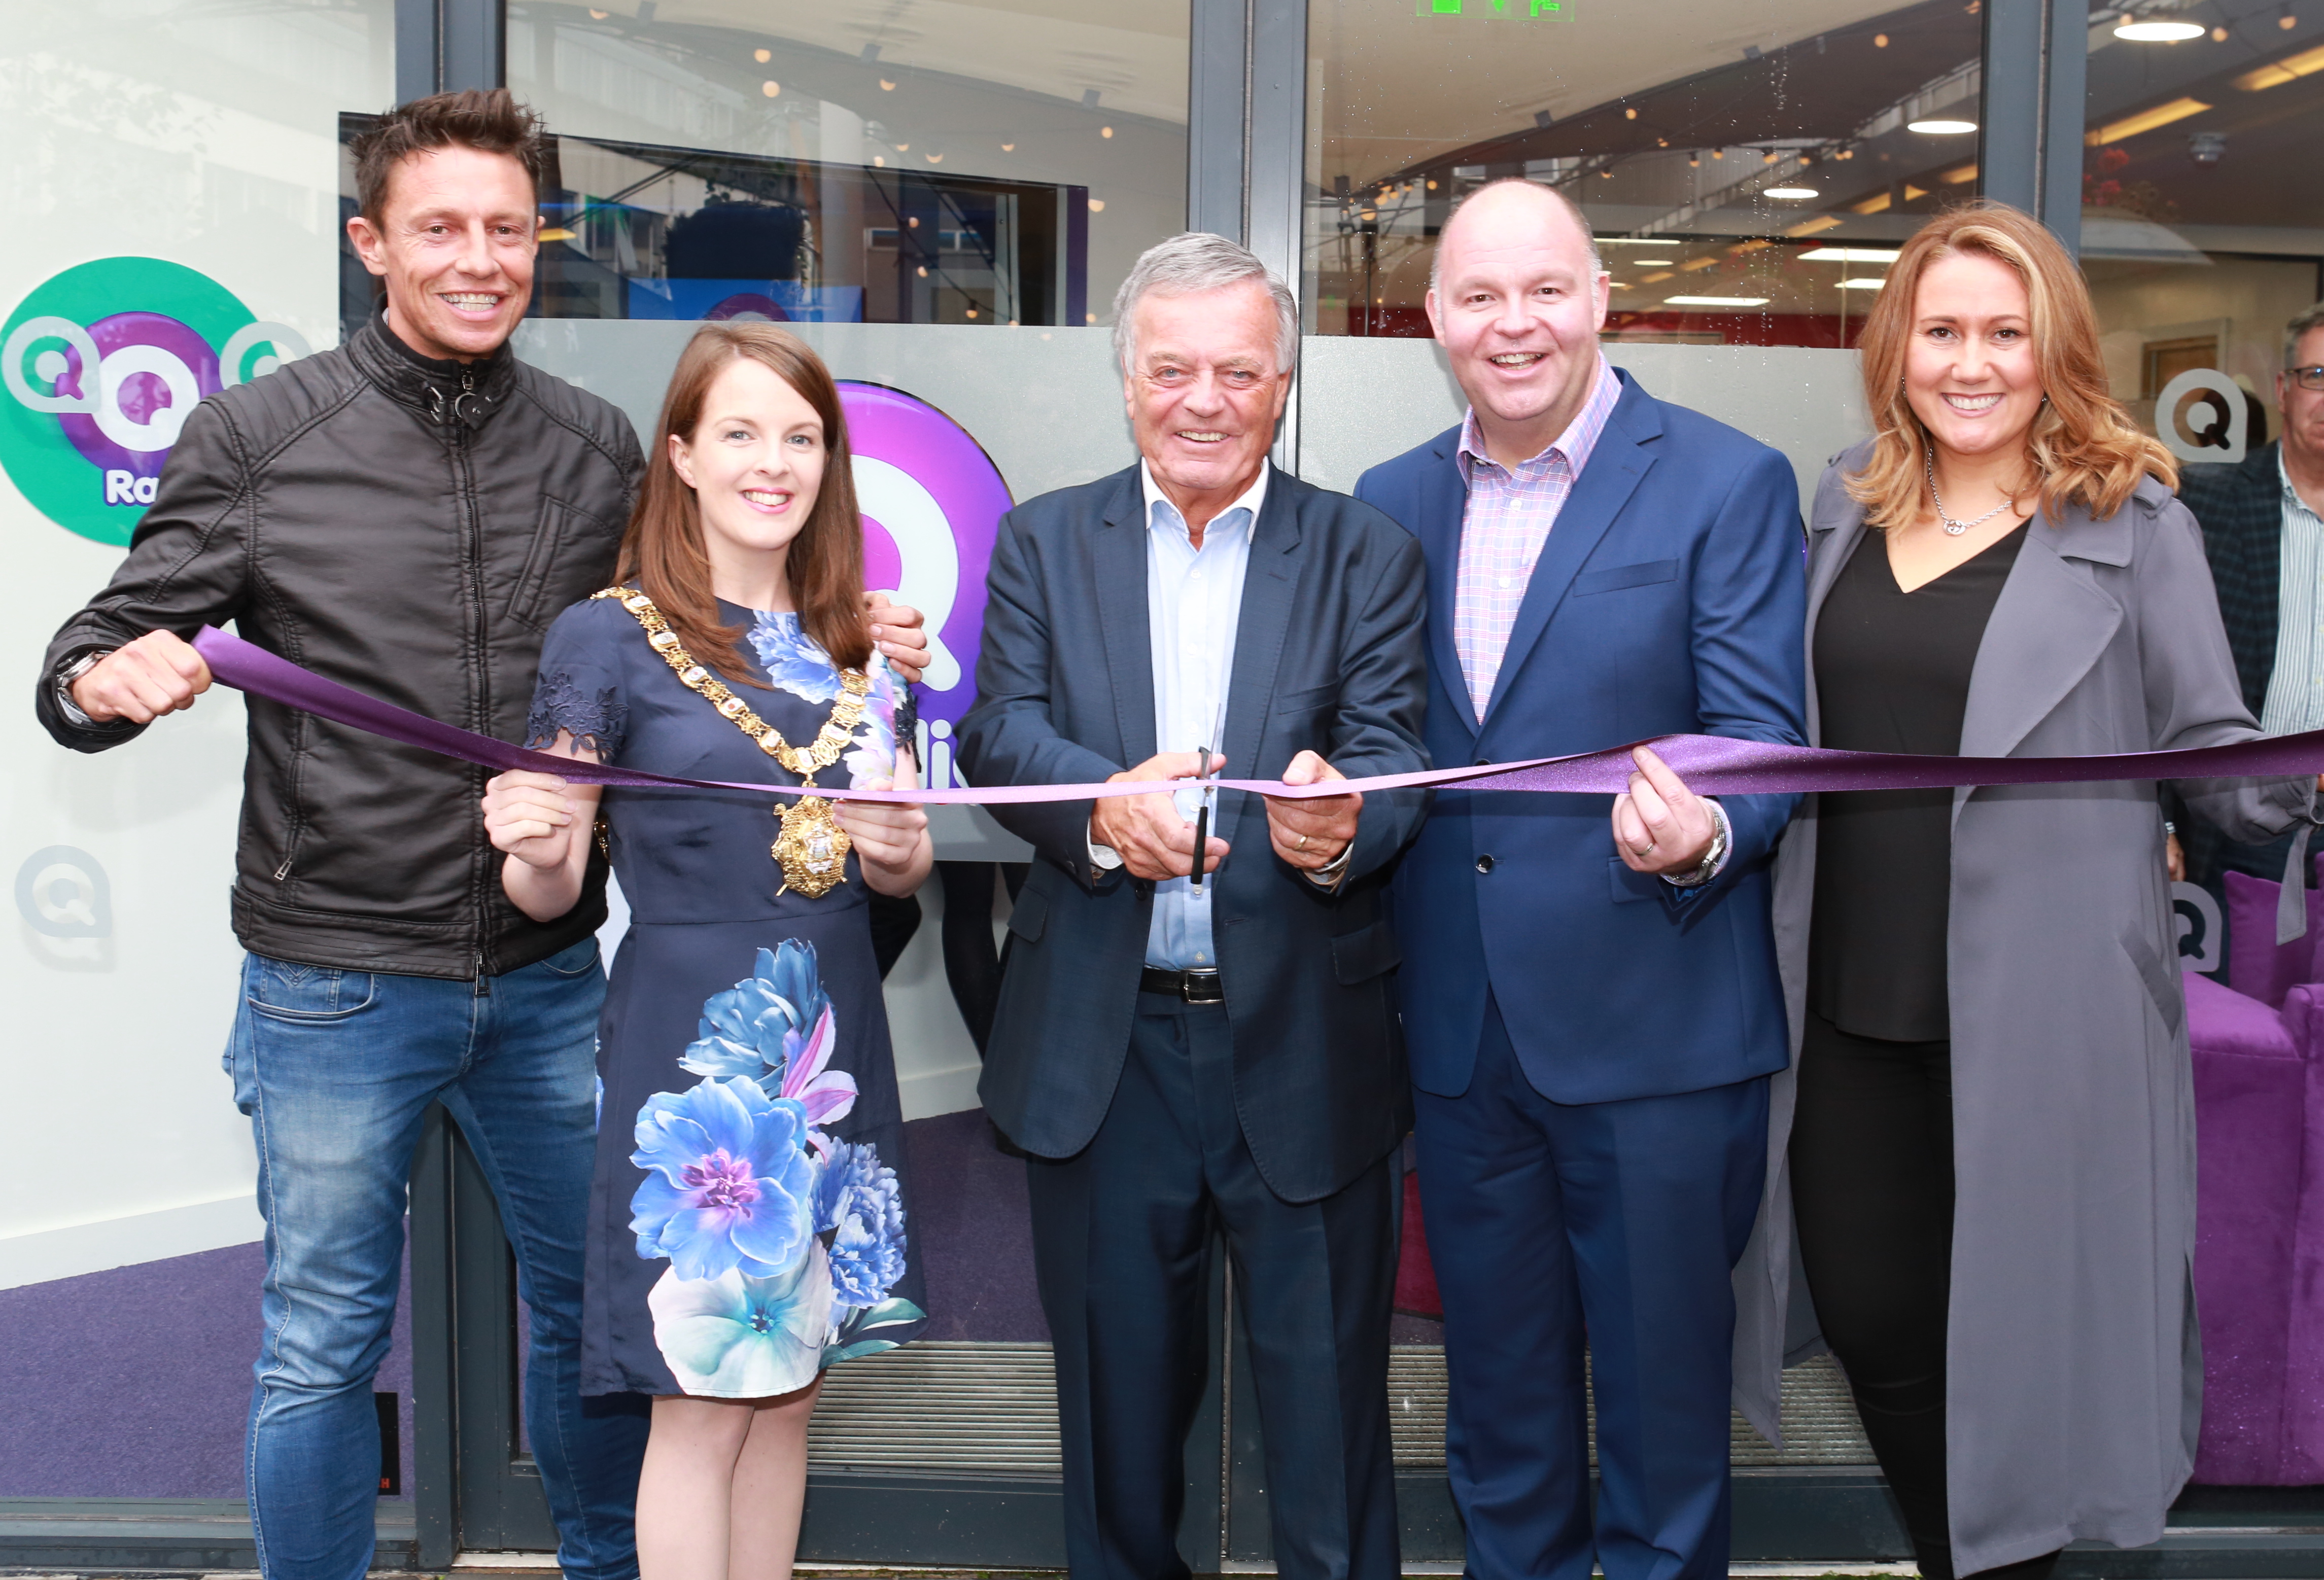 Q Radio launches in heart of Belfast with £600,000 investment in new HQ